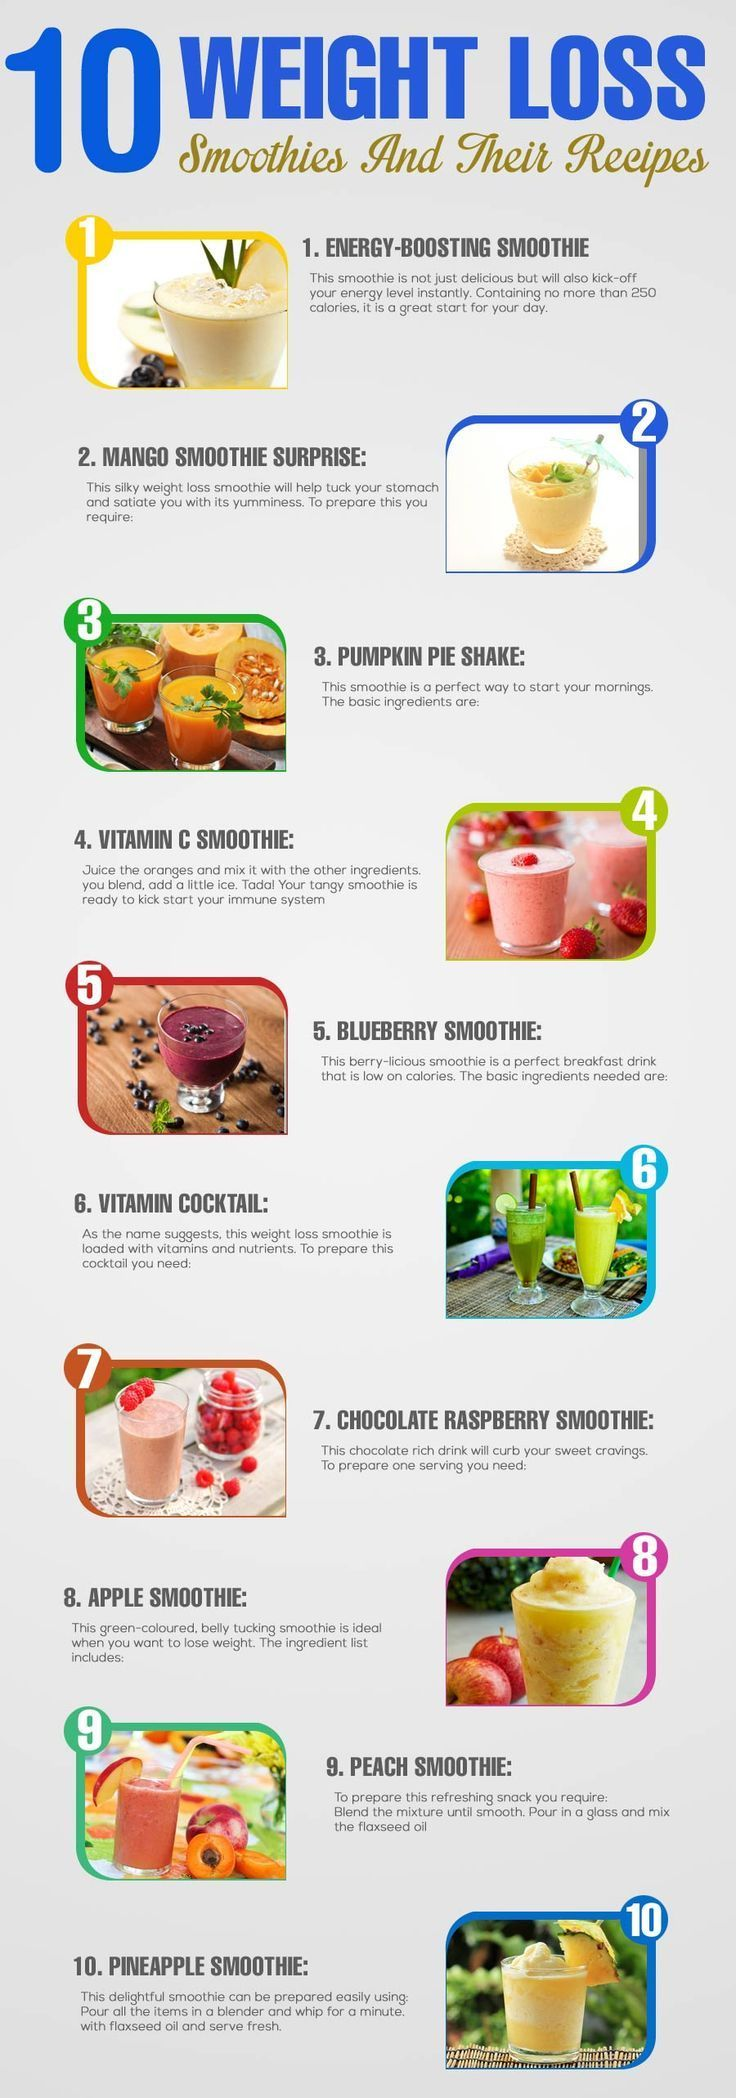 Watch 7 Smoothie Mistakes That Make You Gain Weight video